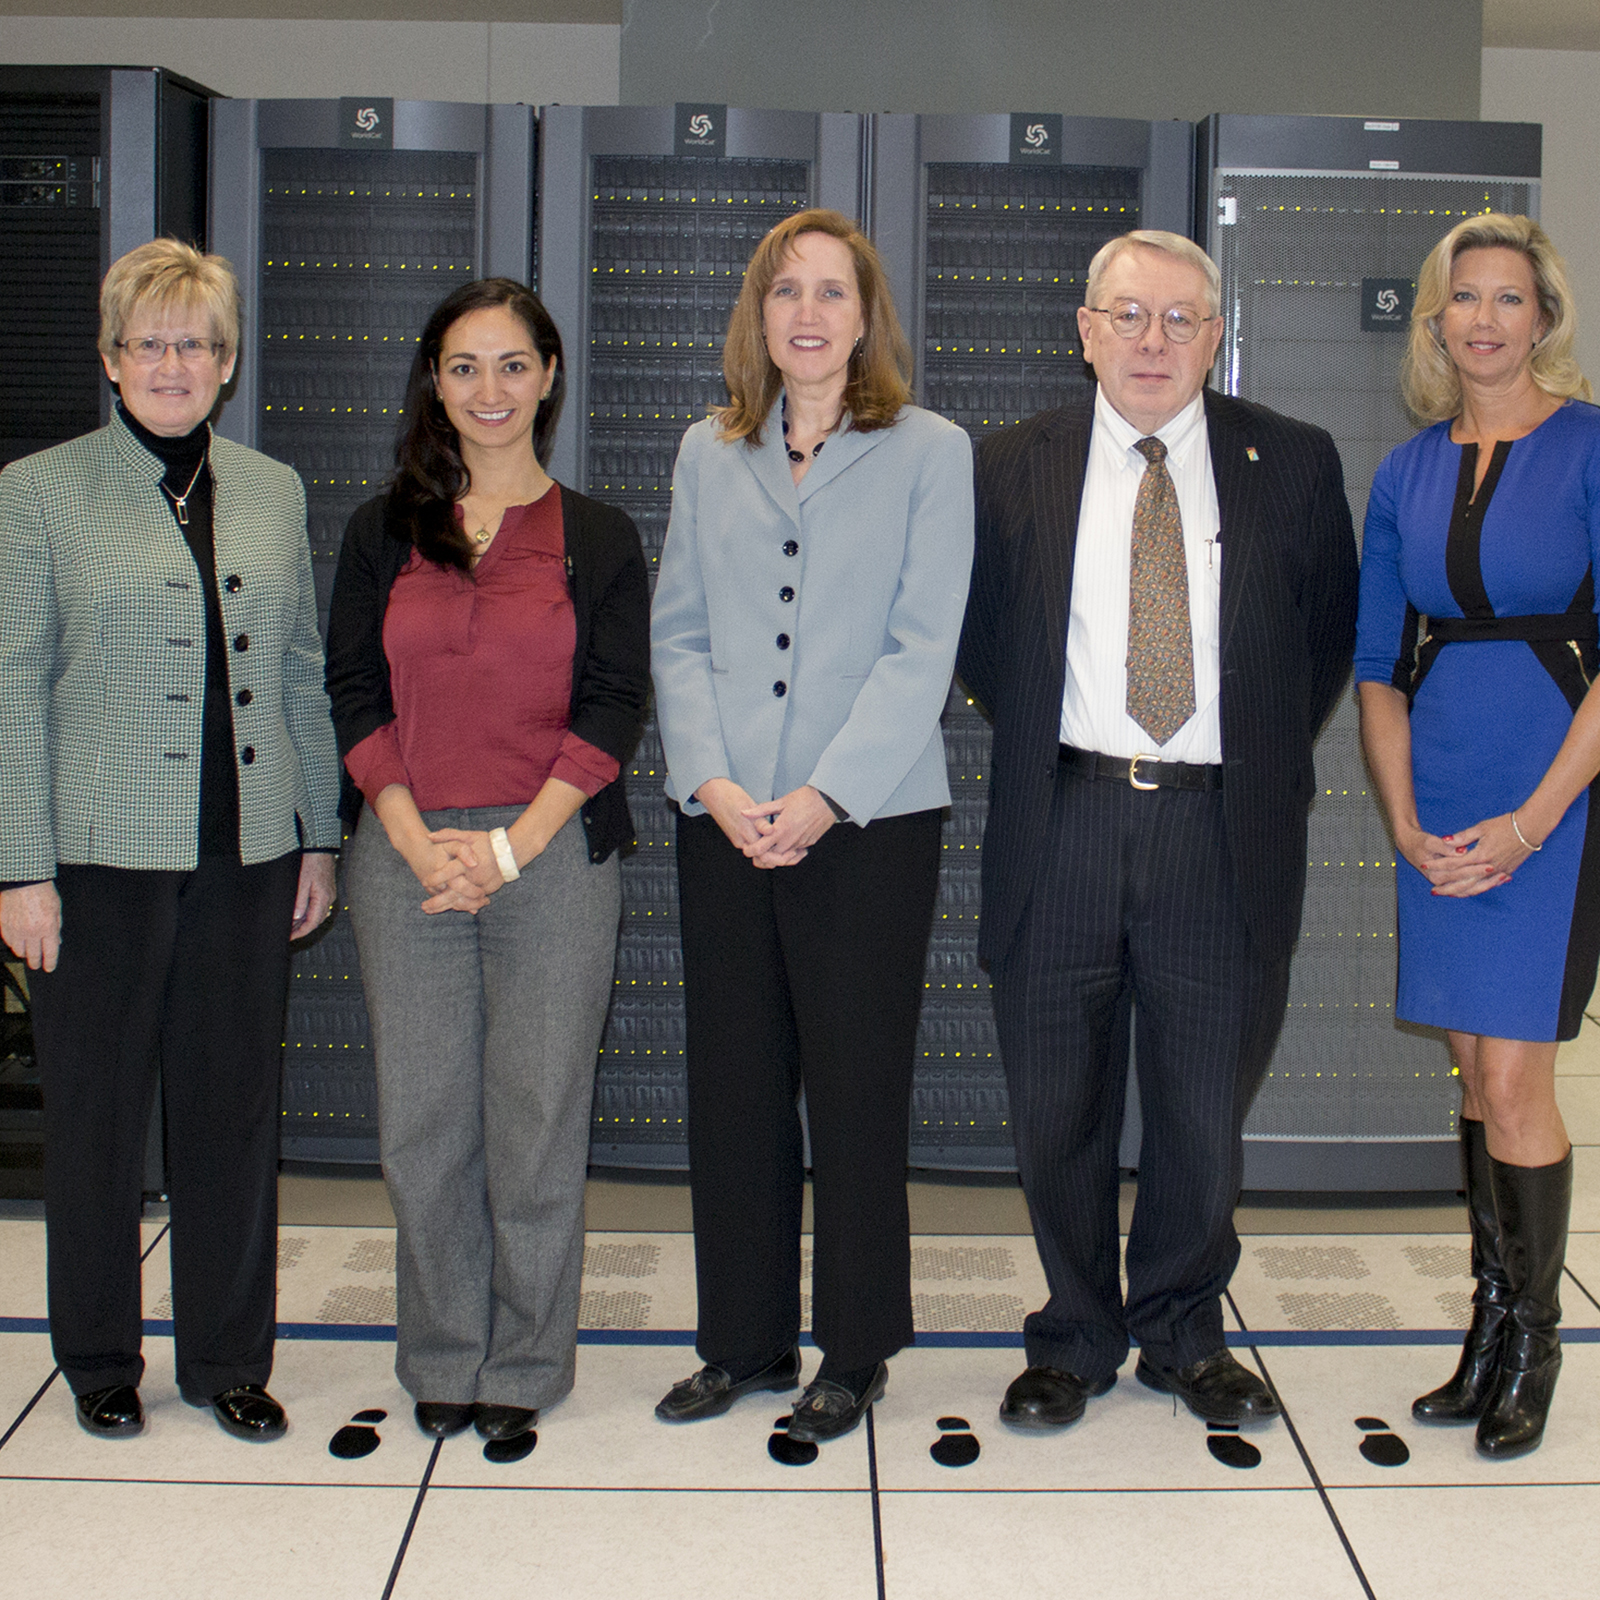 2018 State Library Board: L to R: Krista Taracuk, President; Tracy Nájera, member; Laurie Gemmill Arp, Vice-President; Michael Merz, member; and Melissa Deters, member